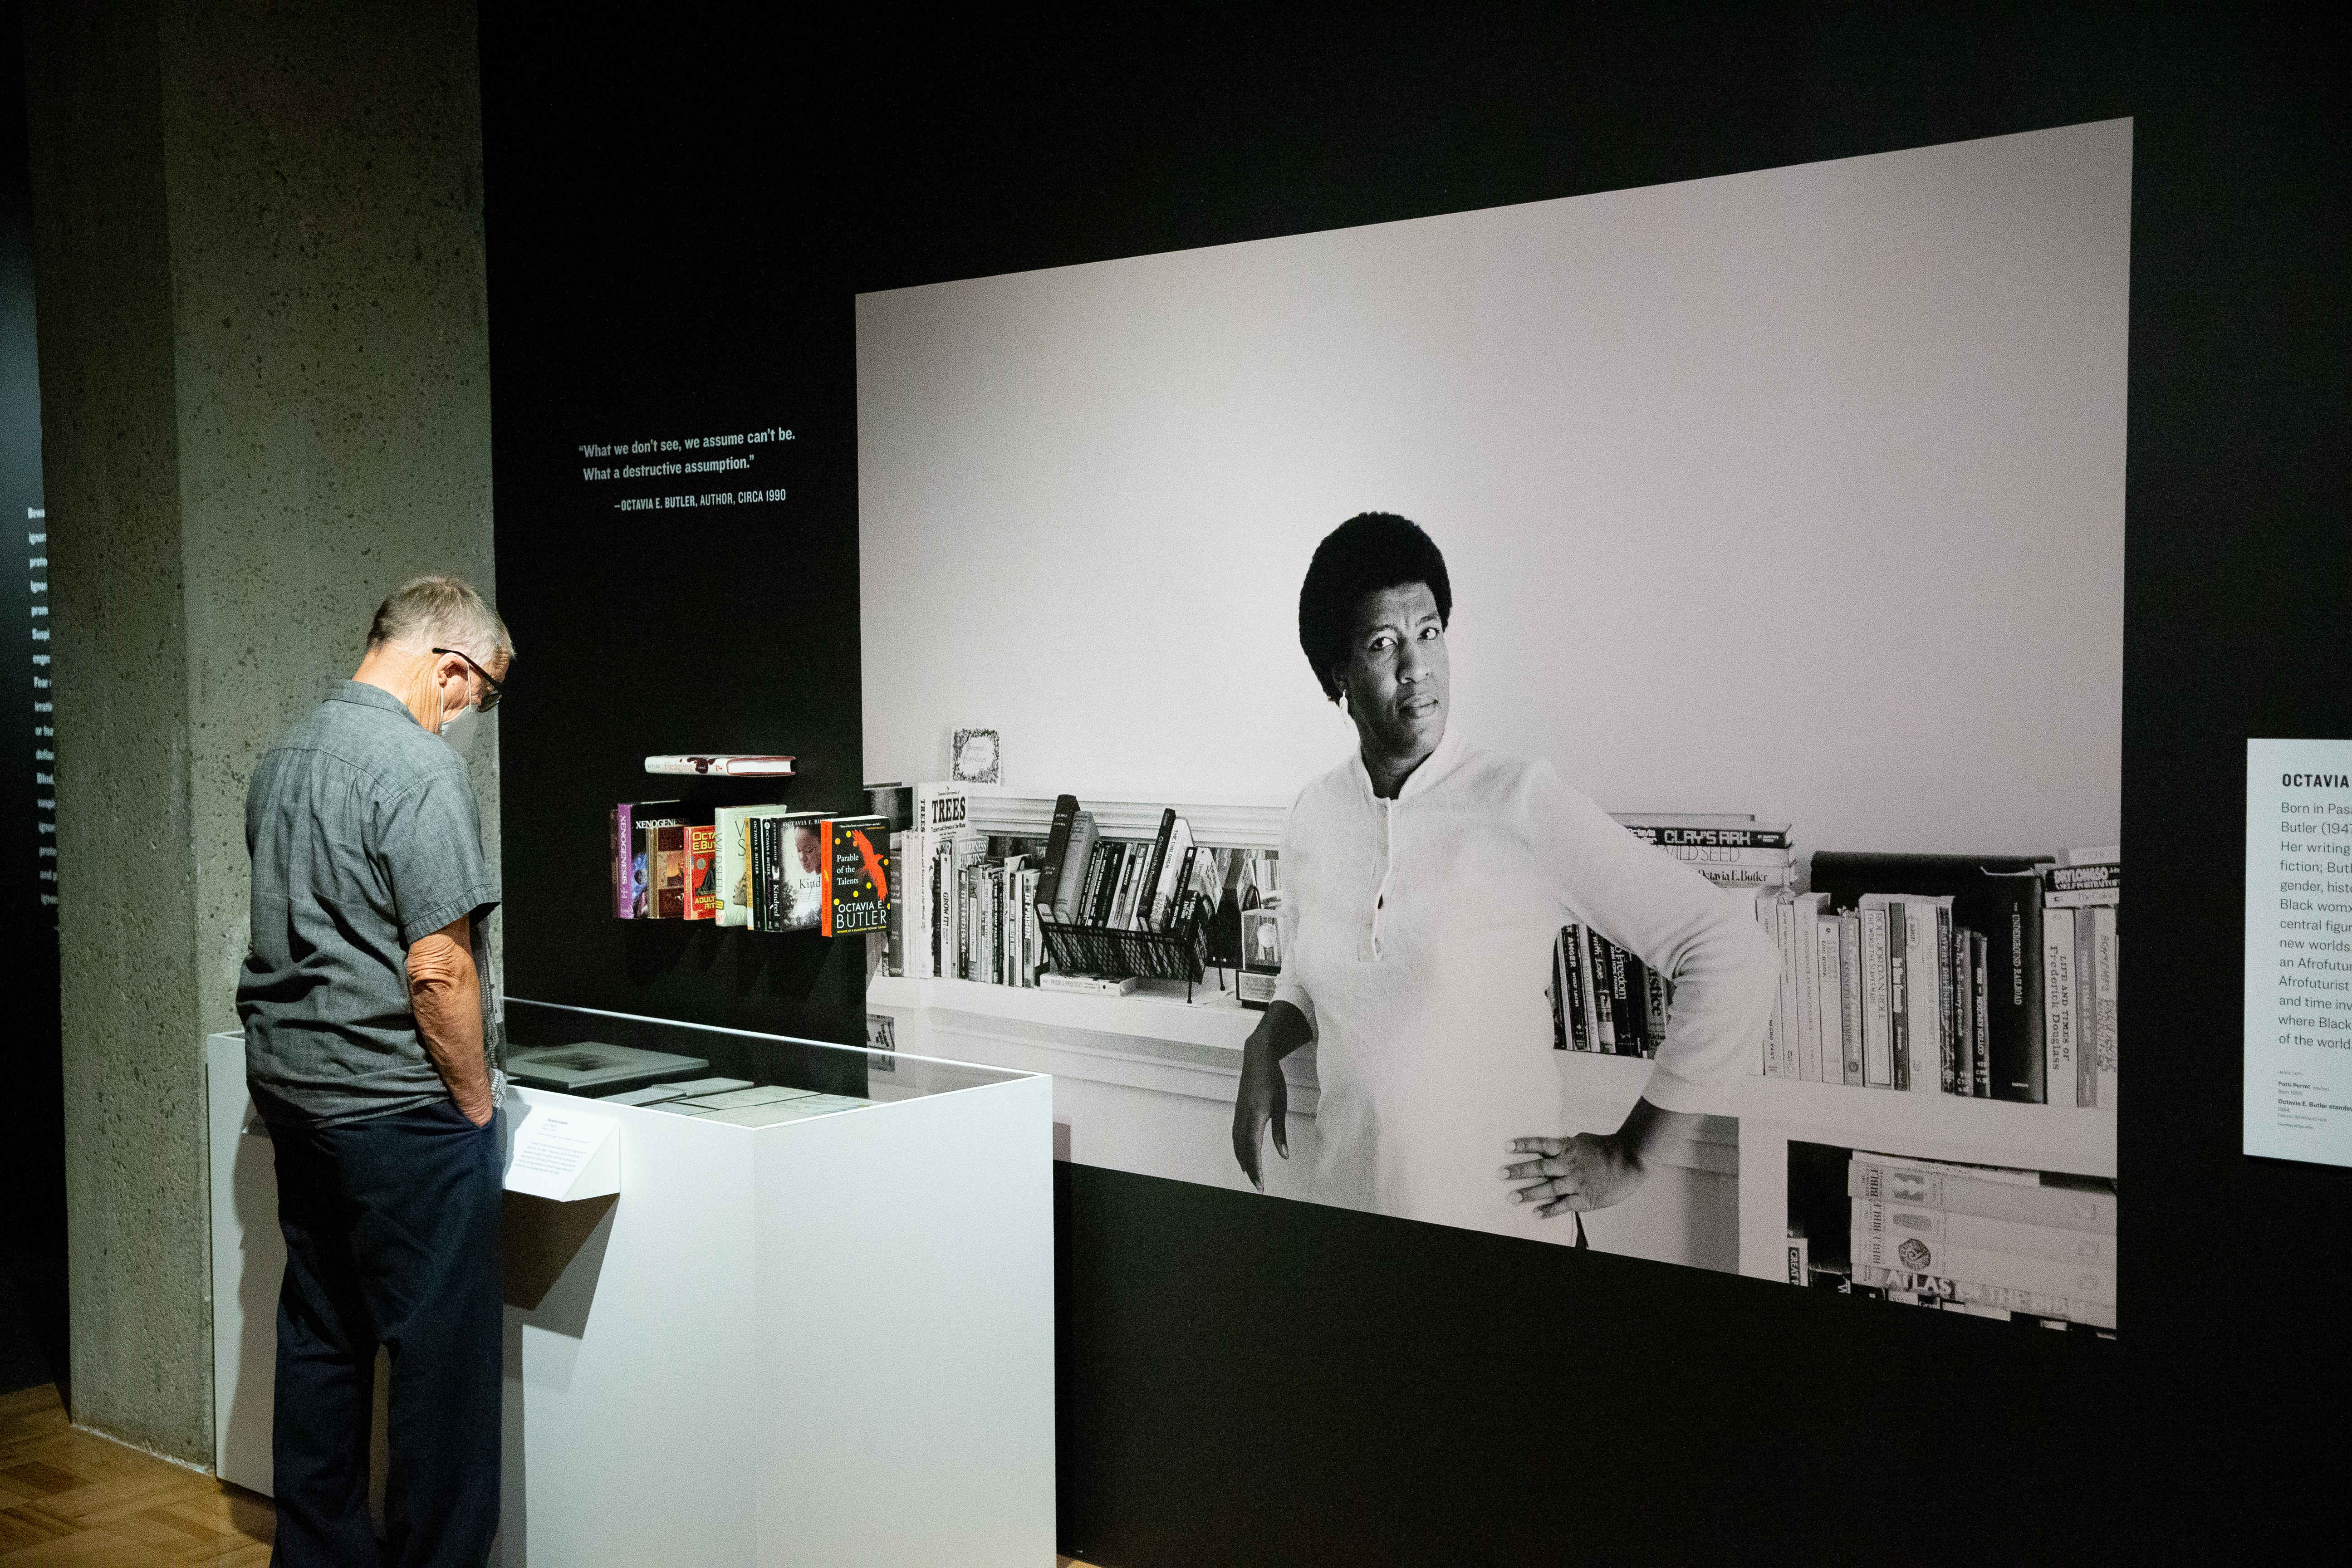 Someone stands at the Octavia Butler section of the Mothership exhibit.